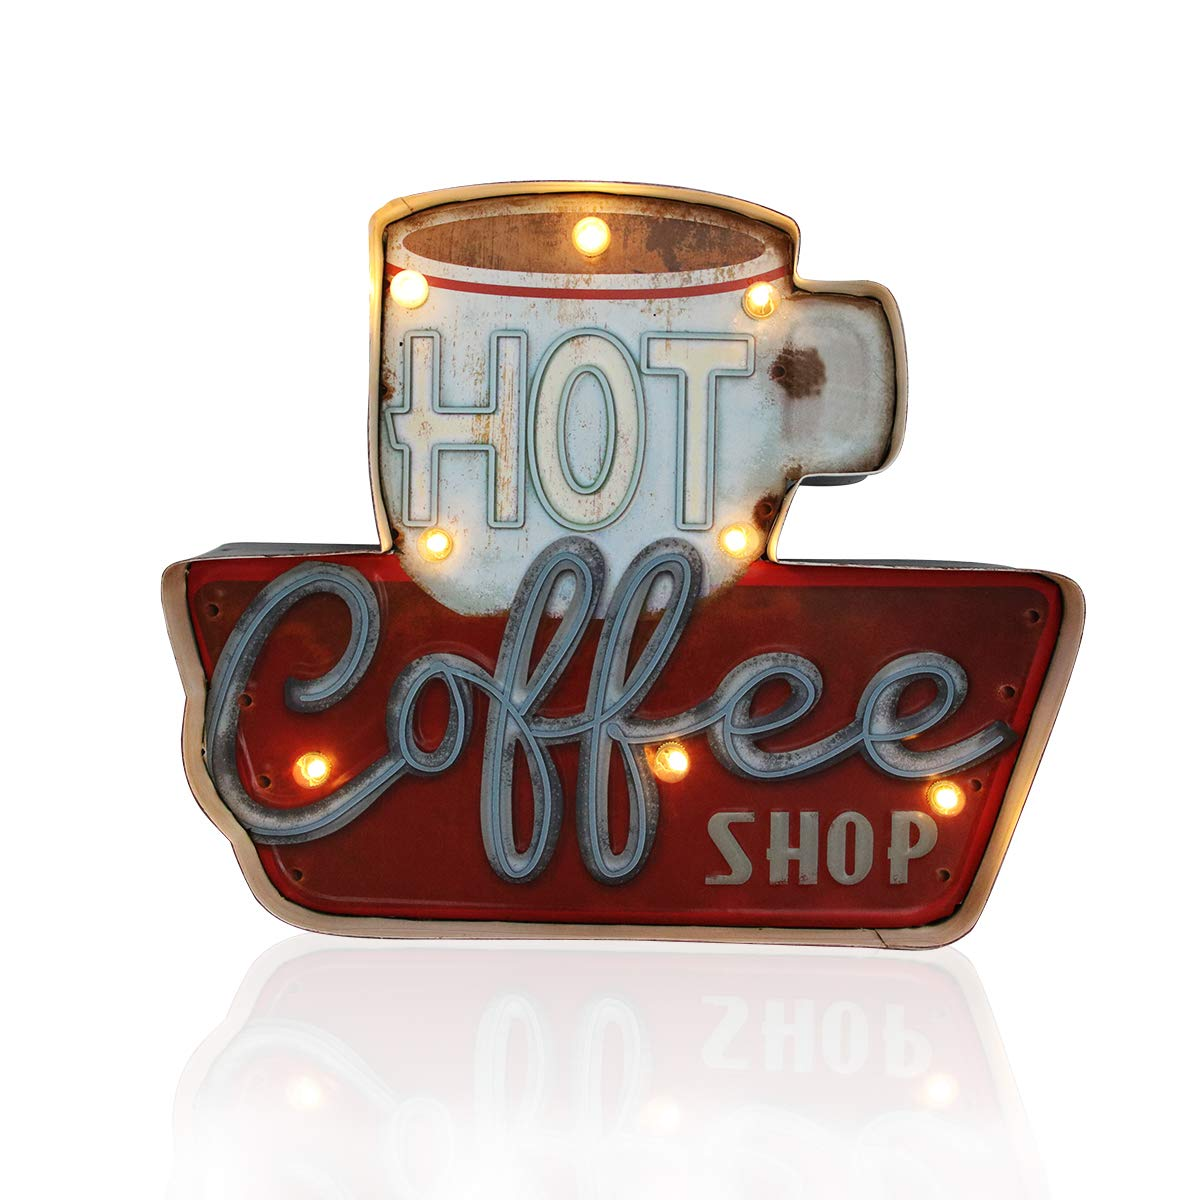 Vintage Handmade Metal Marquee Embossed Tin Decor, Industrial Style Light Up Sign, for Home, Bar or Cafe Wall Decor, On/Off Switch (Hot Coffee)